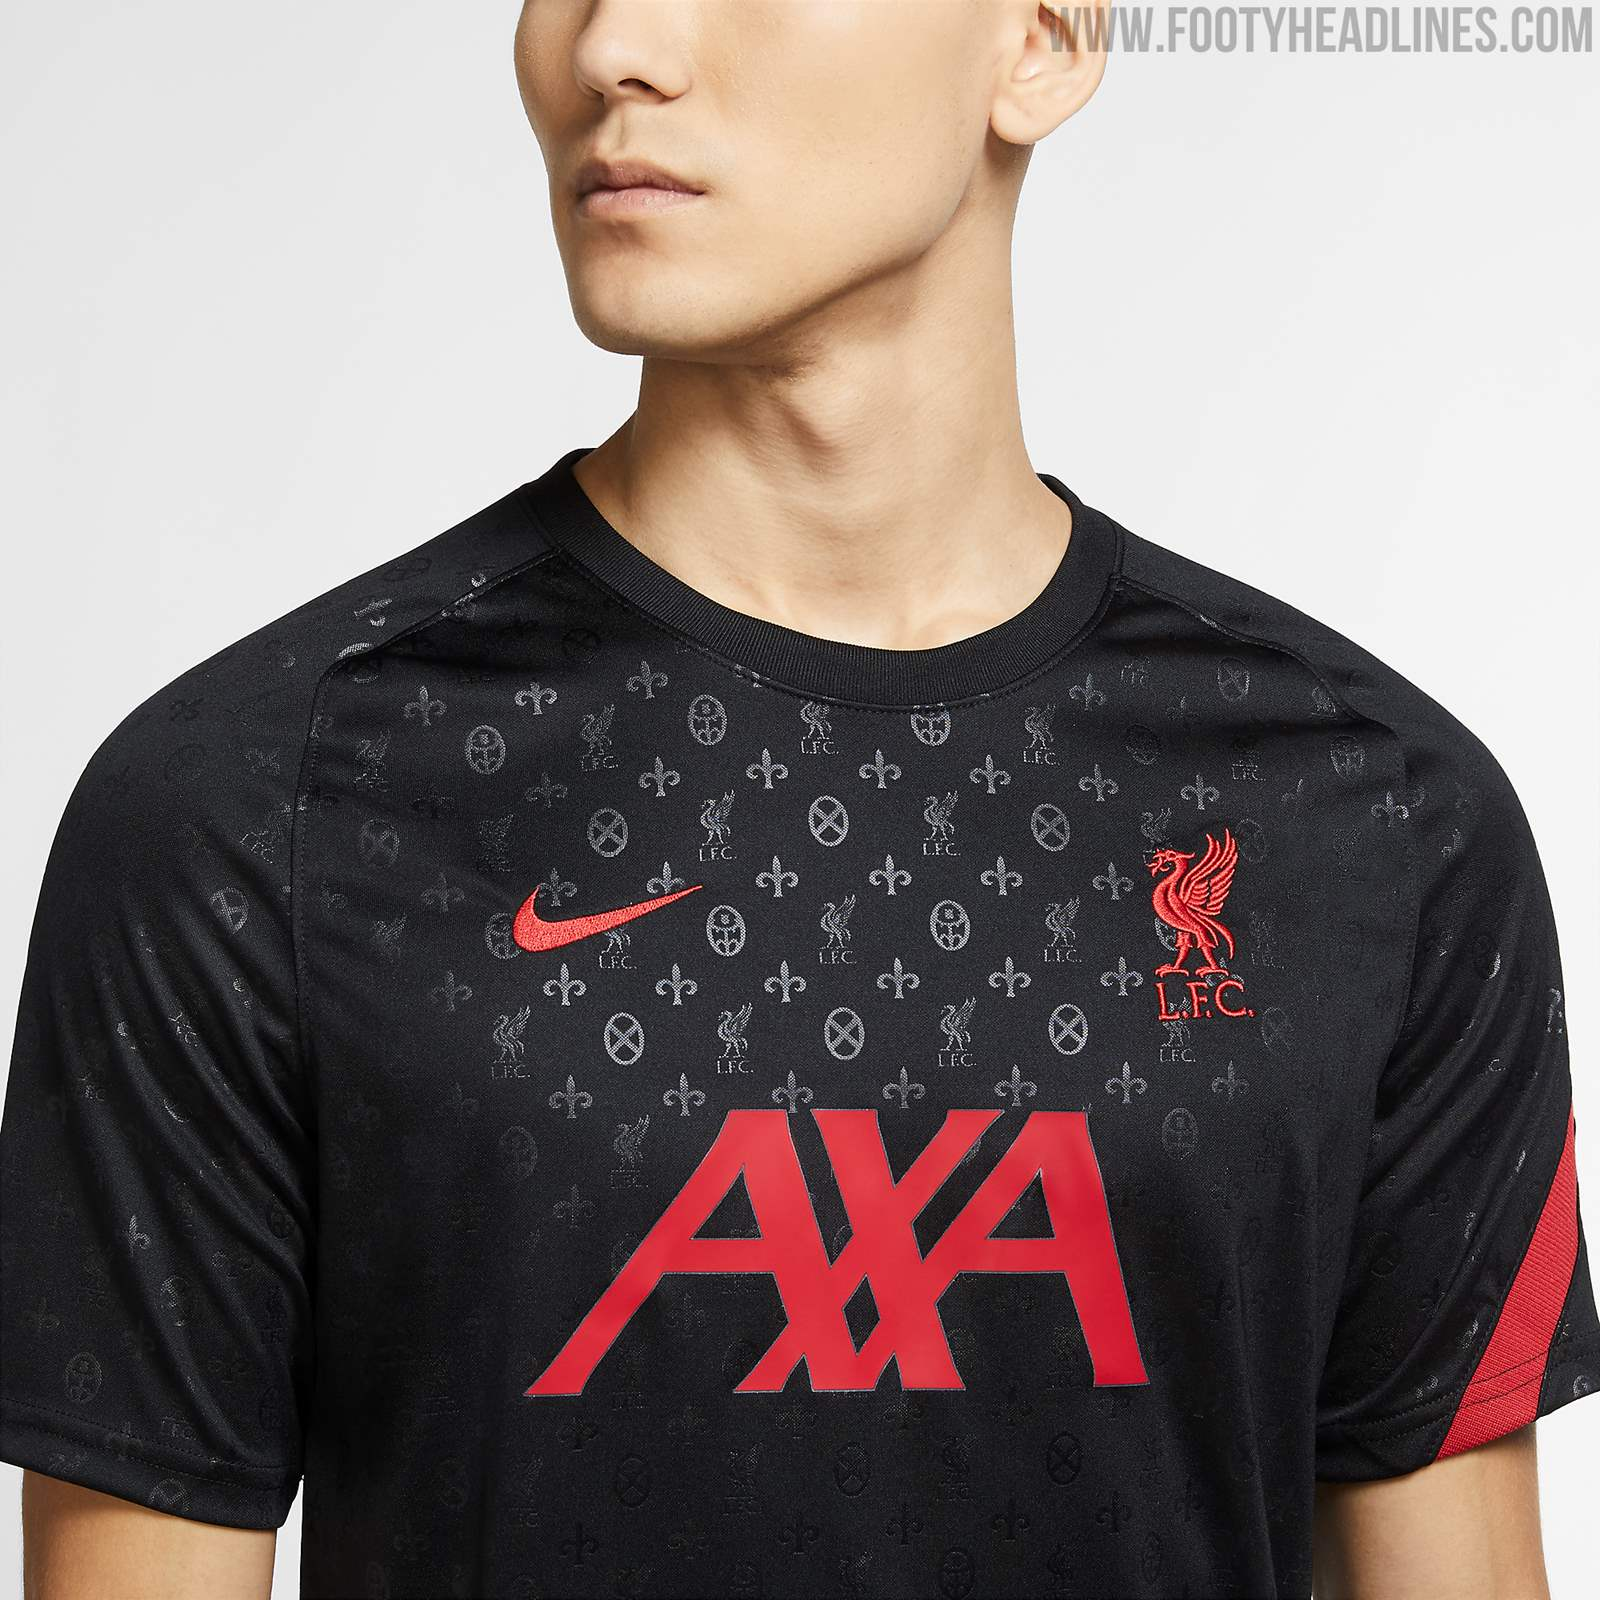 Liverpool 20-21 Pre-Match Shirt Released - Footy Headlines